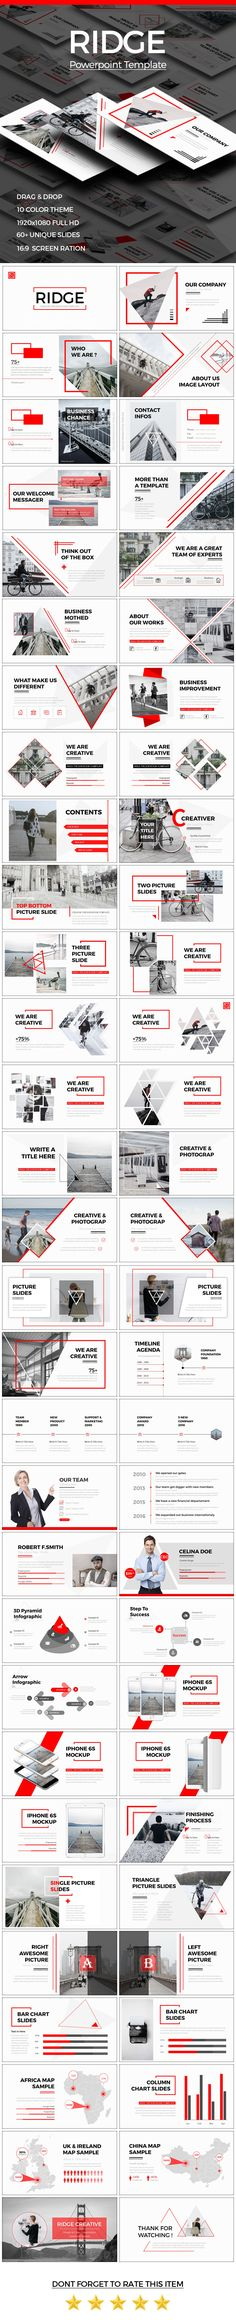 RIDGE CREATIVE Powerpoint Template  #enterprise #excel • Download ➝ https://graphicriver.net/item/ridge-creative-powerpoint-template/18188658?ref=pxcr